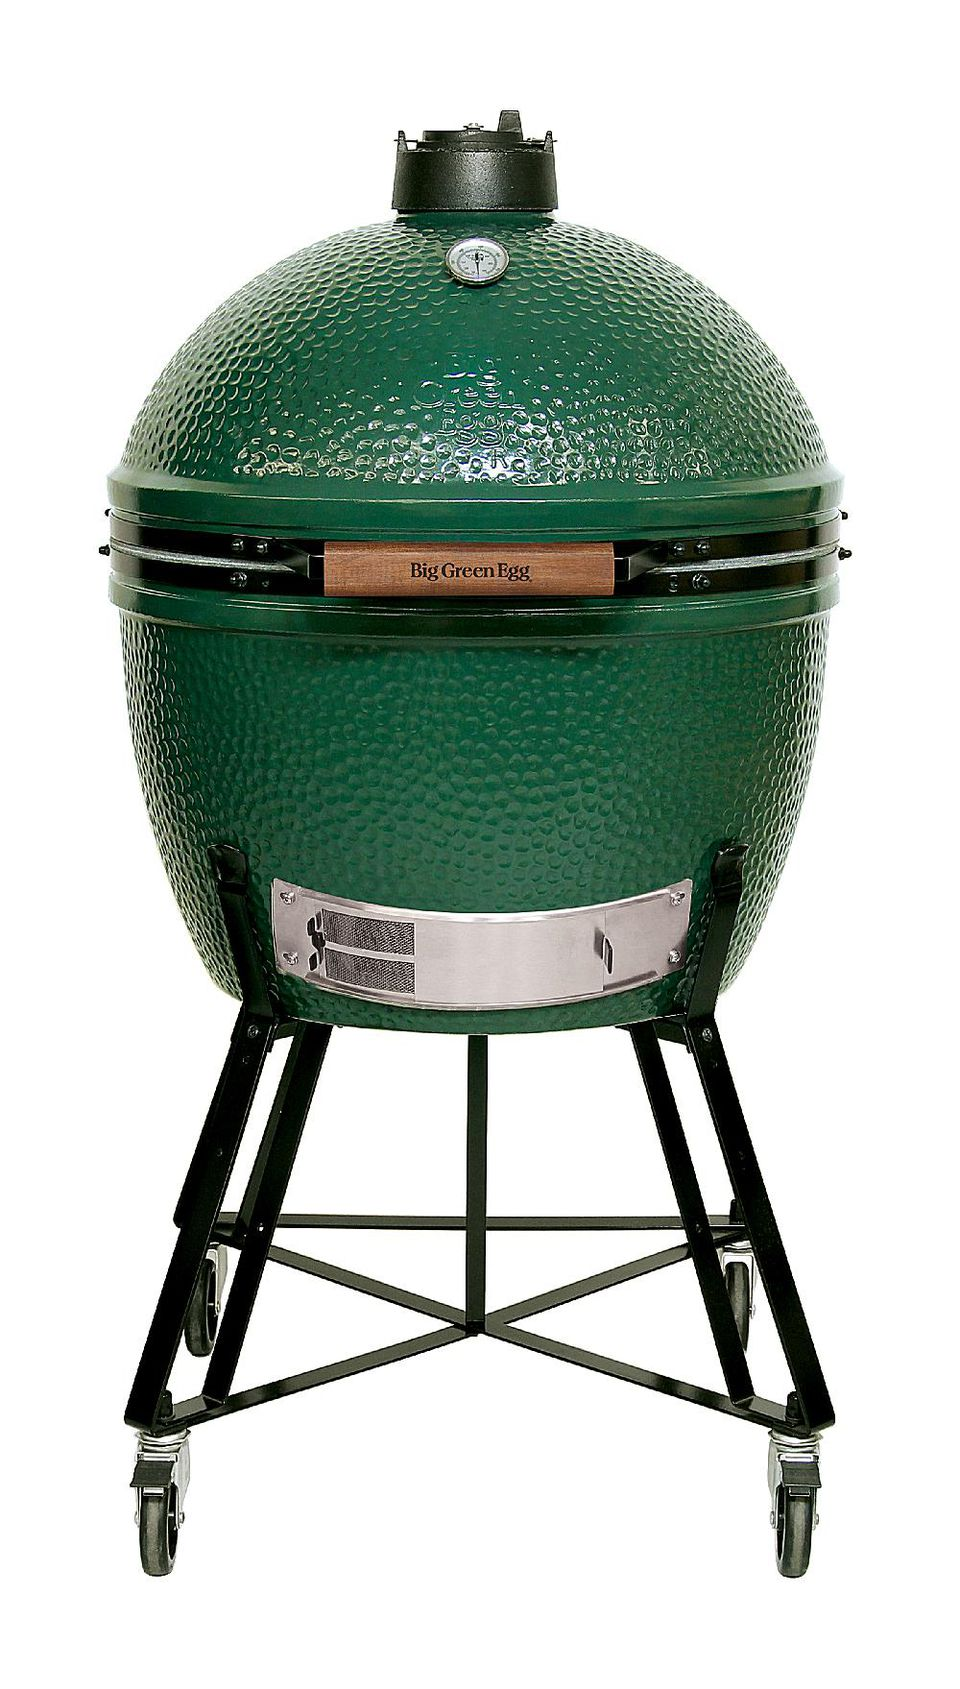 Big Green Egg XL Charcoal Grill Review